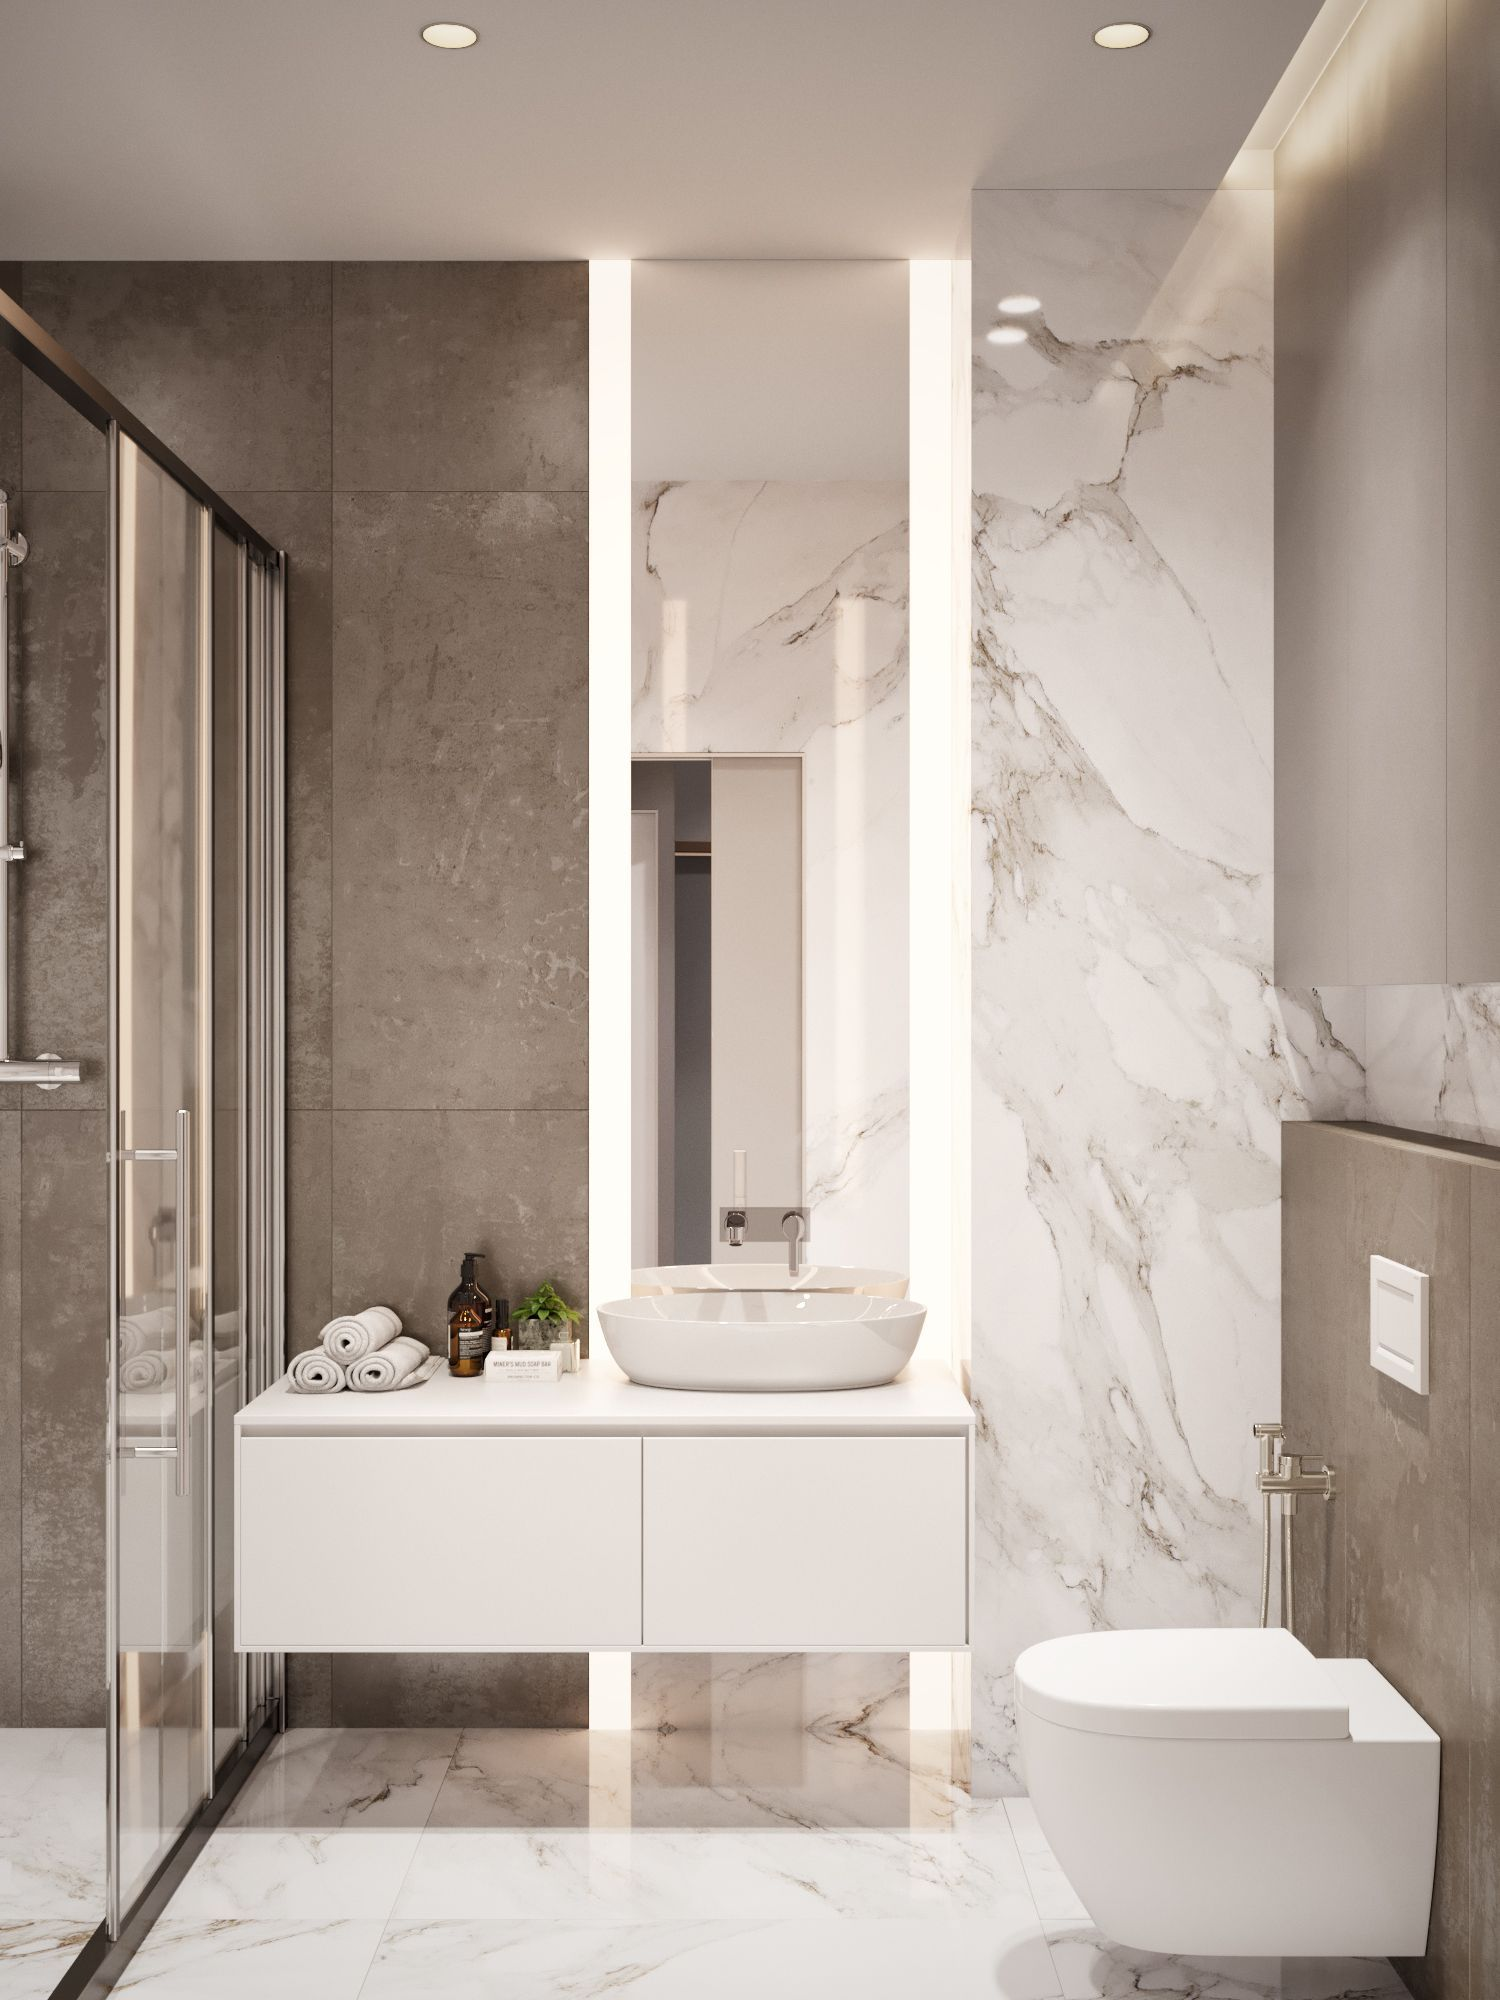 Marble Tiles Marmurinės Plytelės Modern Bathroom Interior Modernus Vonios Interjeras Https Modern Style Bathroom Bathroom Design Small Modern Bathroom